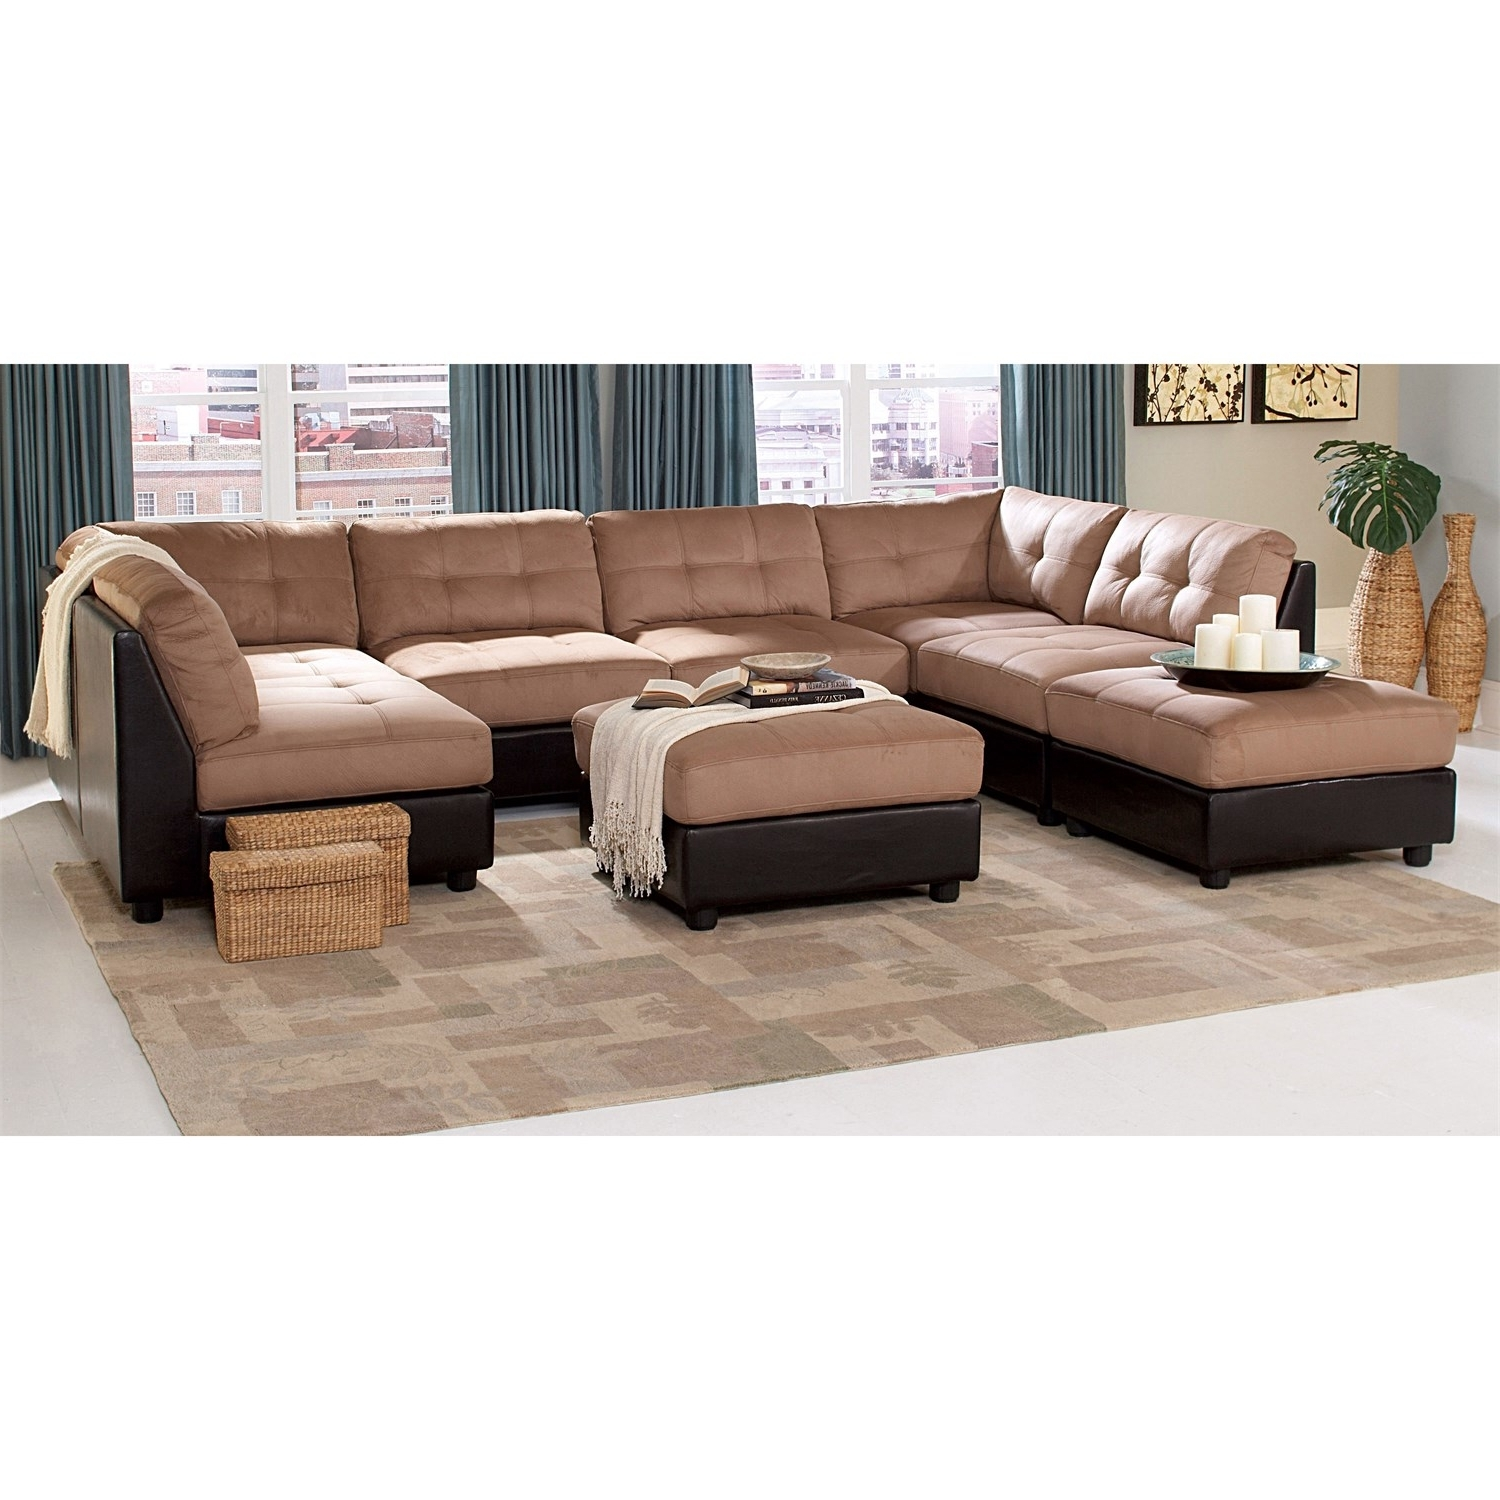 Newest Coaster Furniture 551001/4 551002/2 Claude 6 Piece Brown Sectional In Macon Ga Sectional Sofas (View 2 of 15)